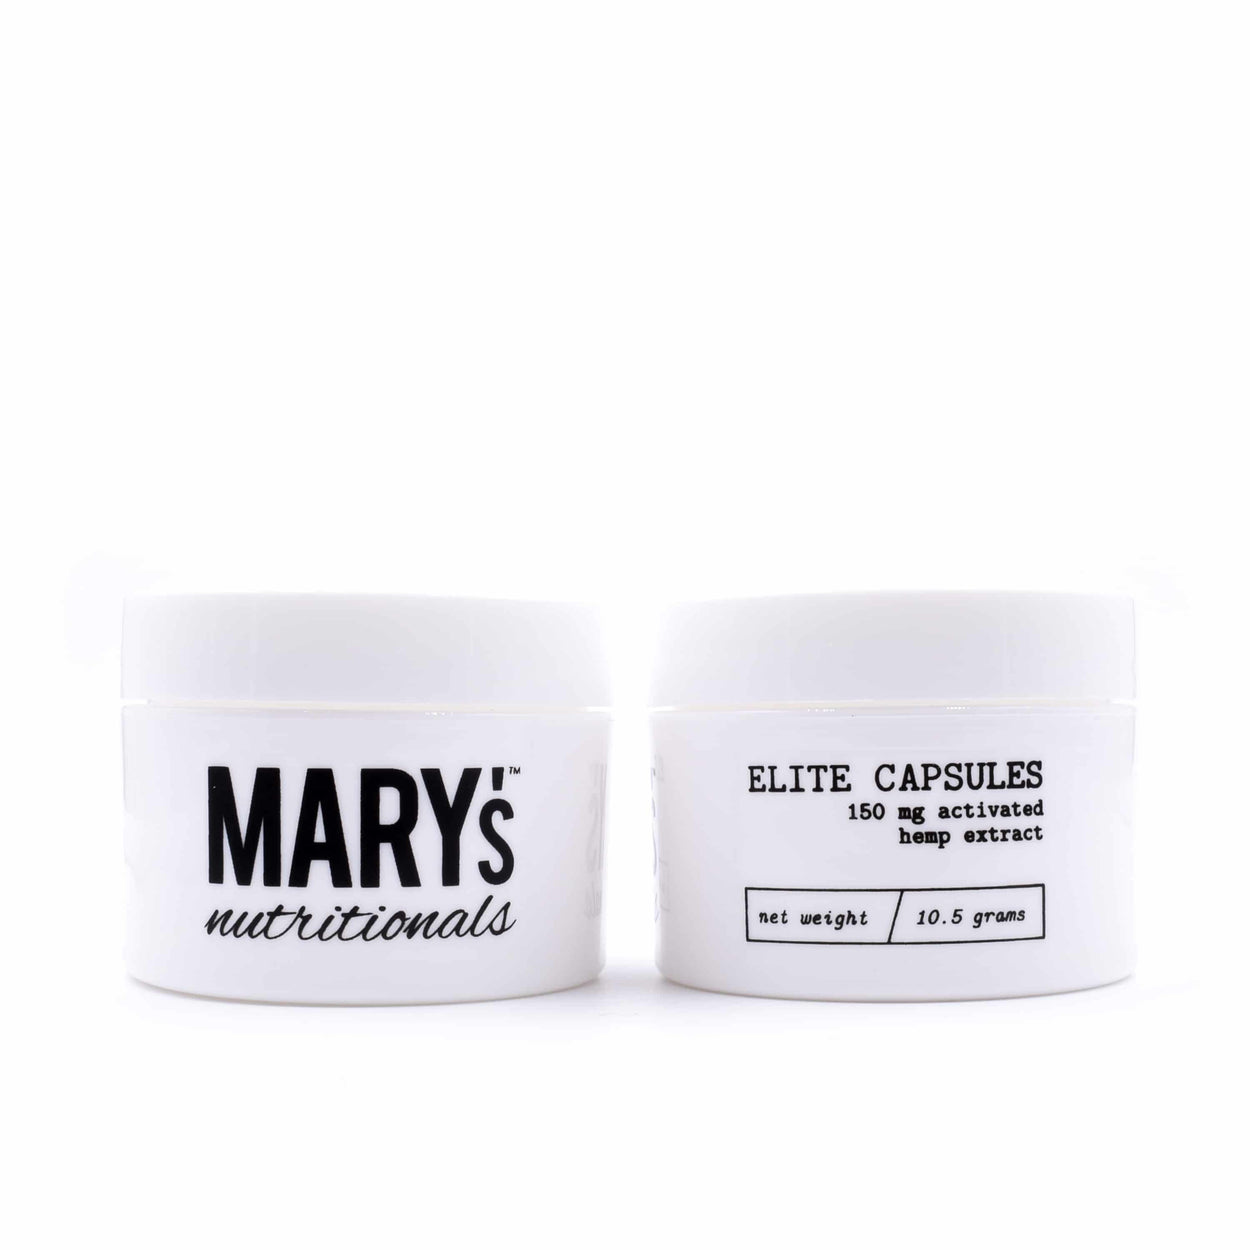 Mary's Nutritionals - Elite Capsules - Have A Nice Day CBD